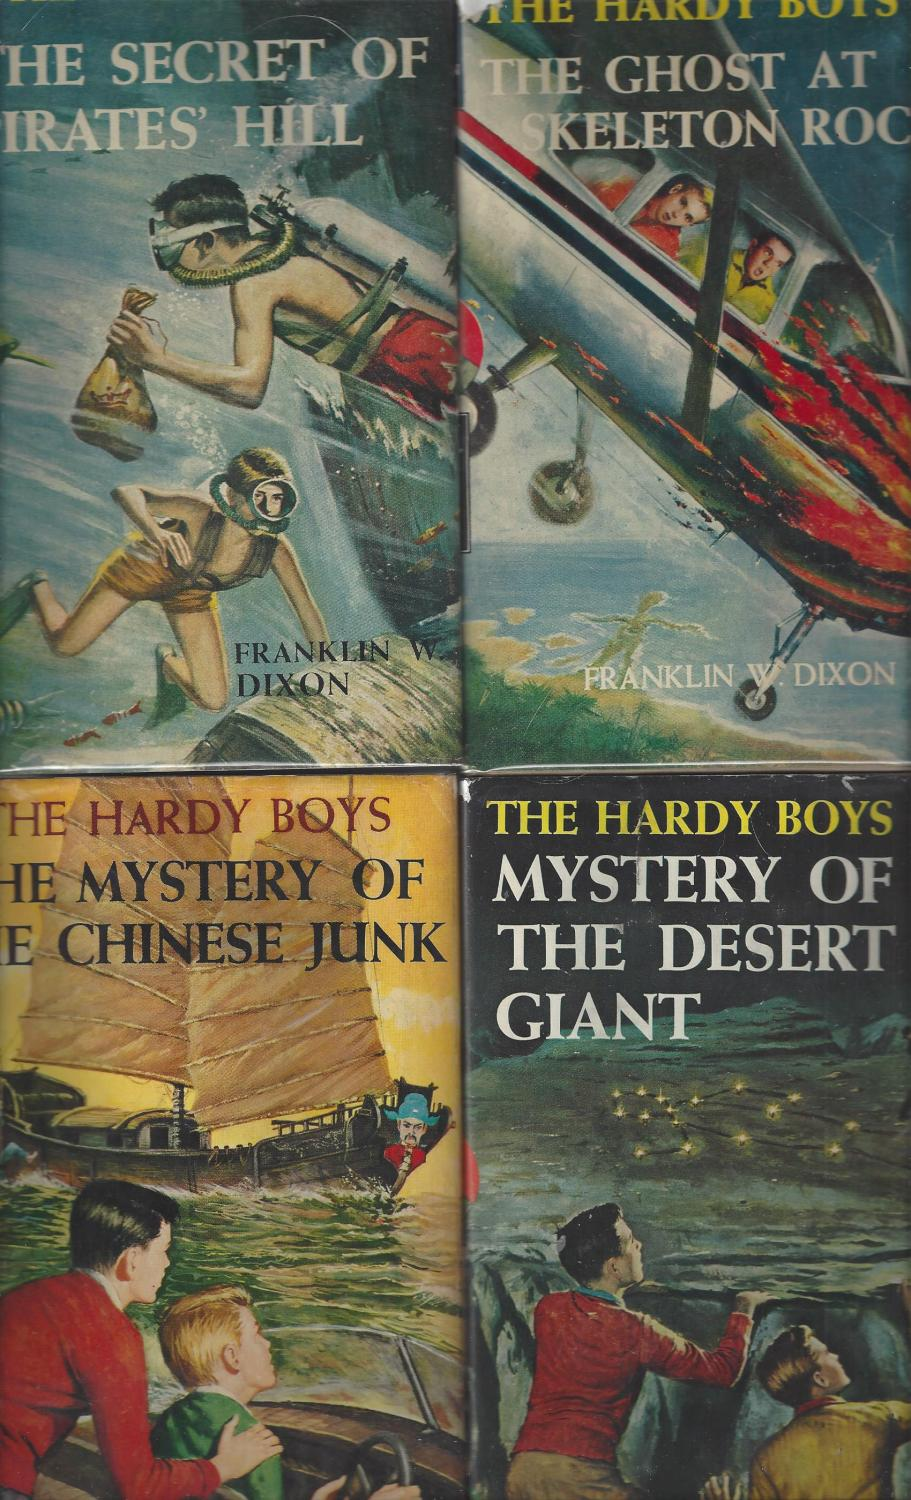 hardy boys 15 the sinister signpost dixon franklin w